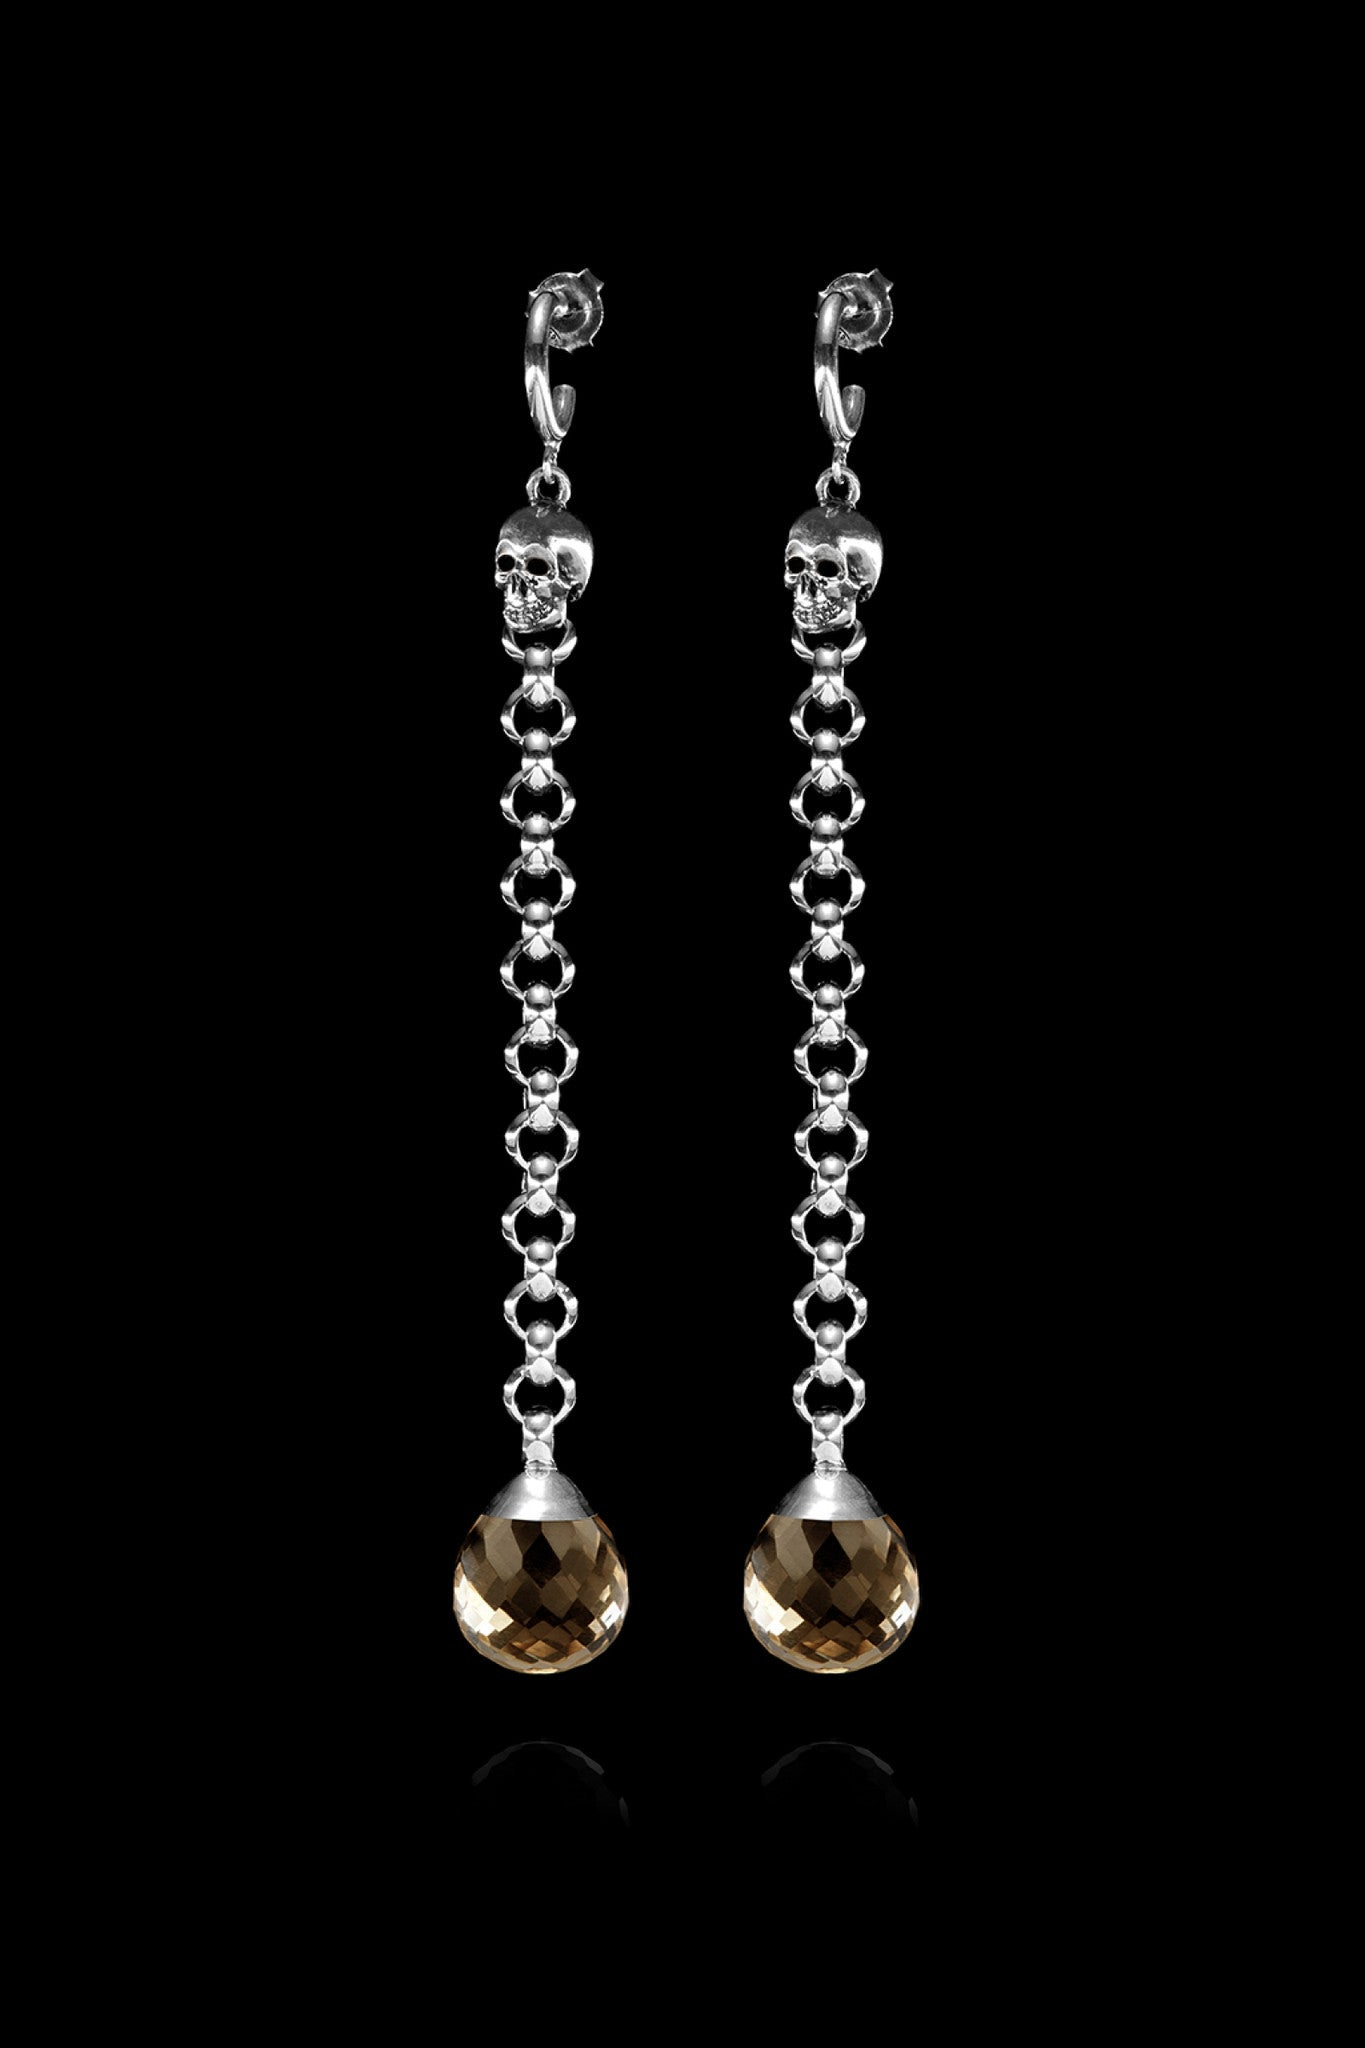 Ugo Cacciatori, Silver, Jewelry, Sterling Silver, Earrings, Smoky Quartz, Smoky Quartz and Black Diamonds, Smoky Quartz and Brown Diamonds, Smoky Quartz and Emeralds, Smoky Quartz and Rubies, Smoky Quartz and Sapphires